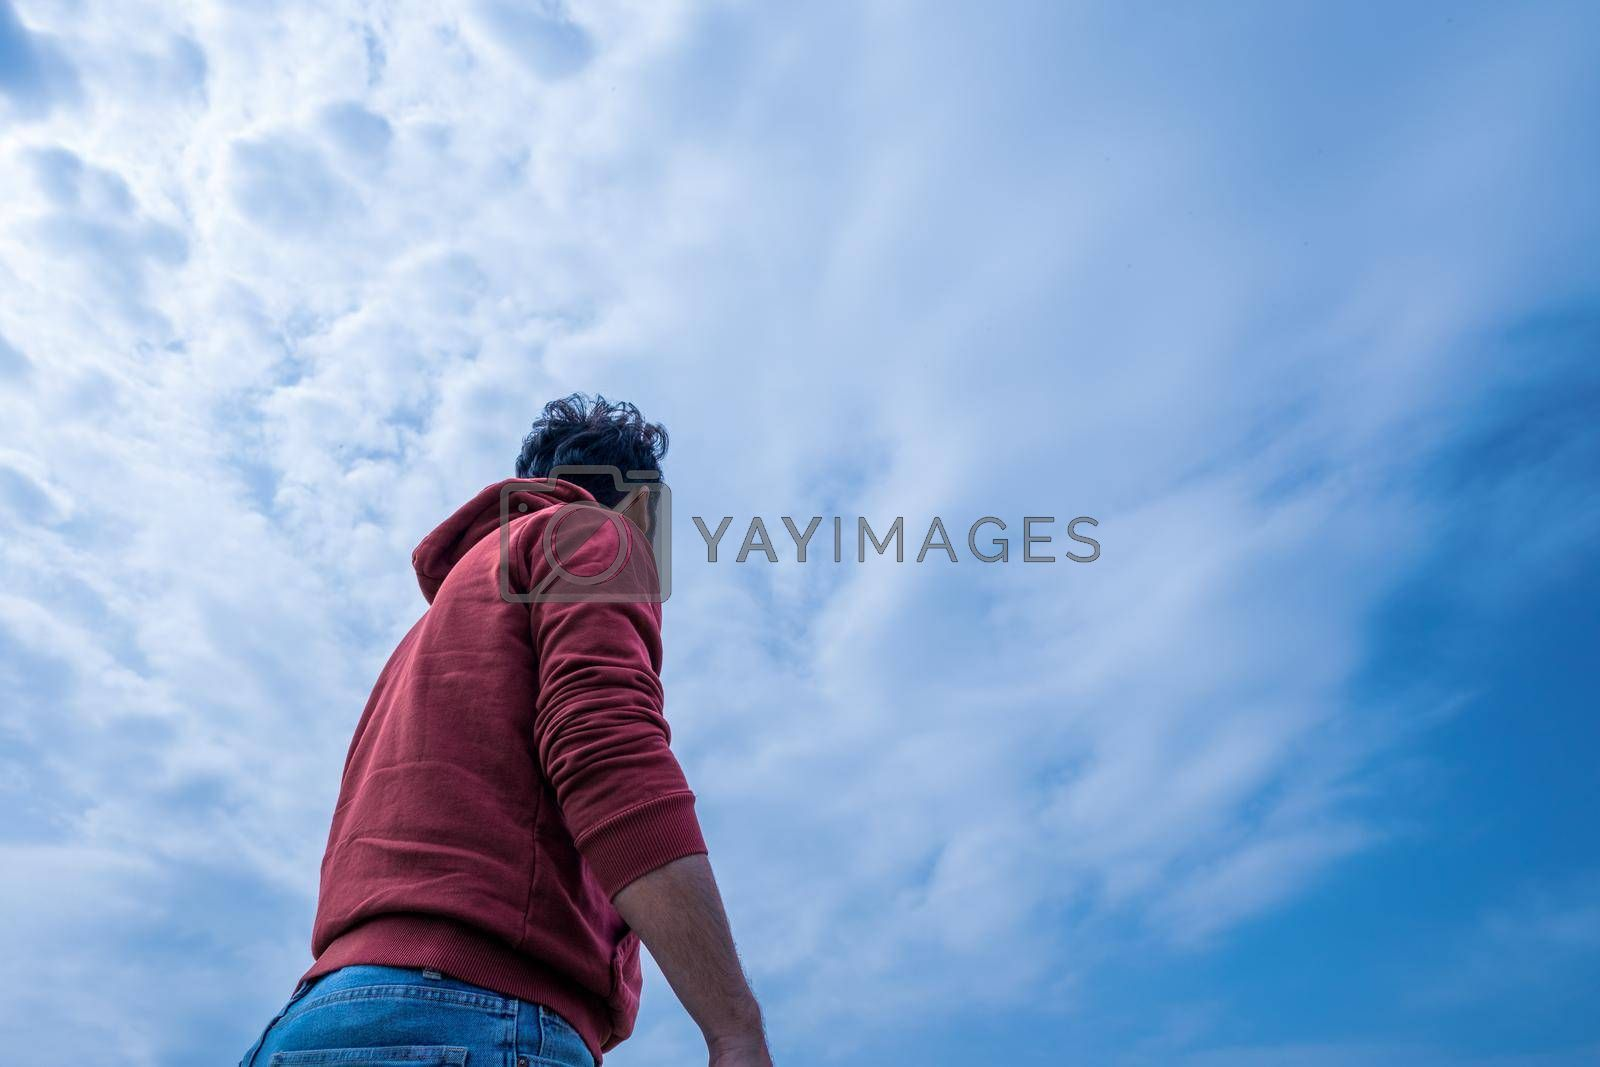 medium shot of a male person from low angle depicting him standing in a bright air